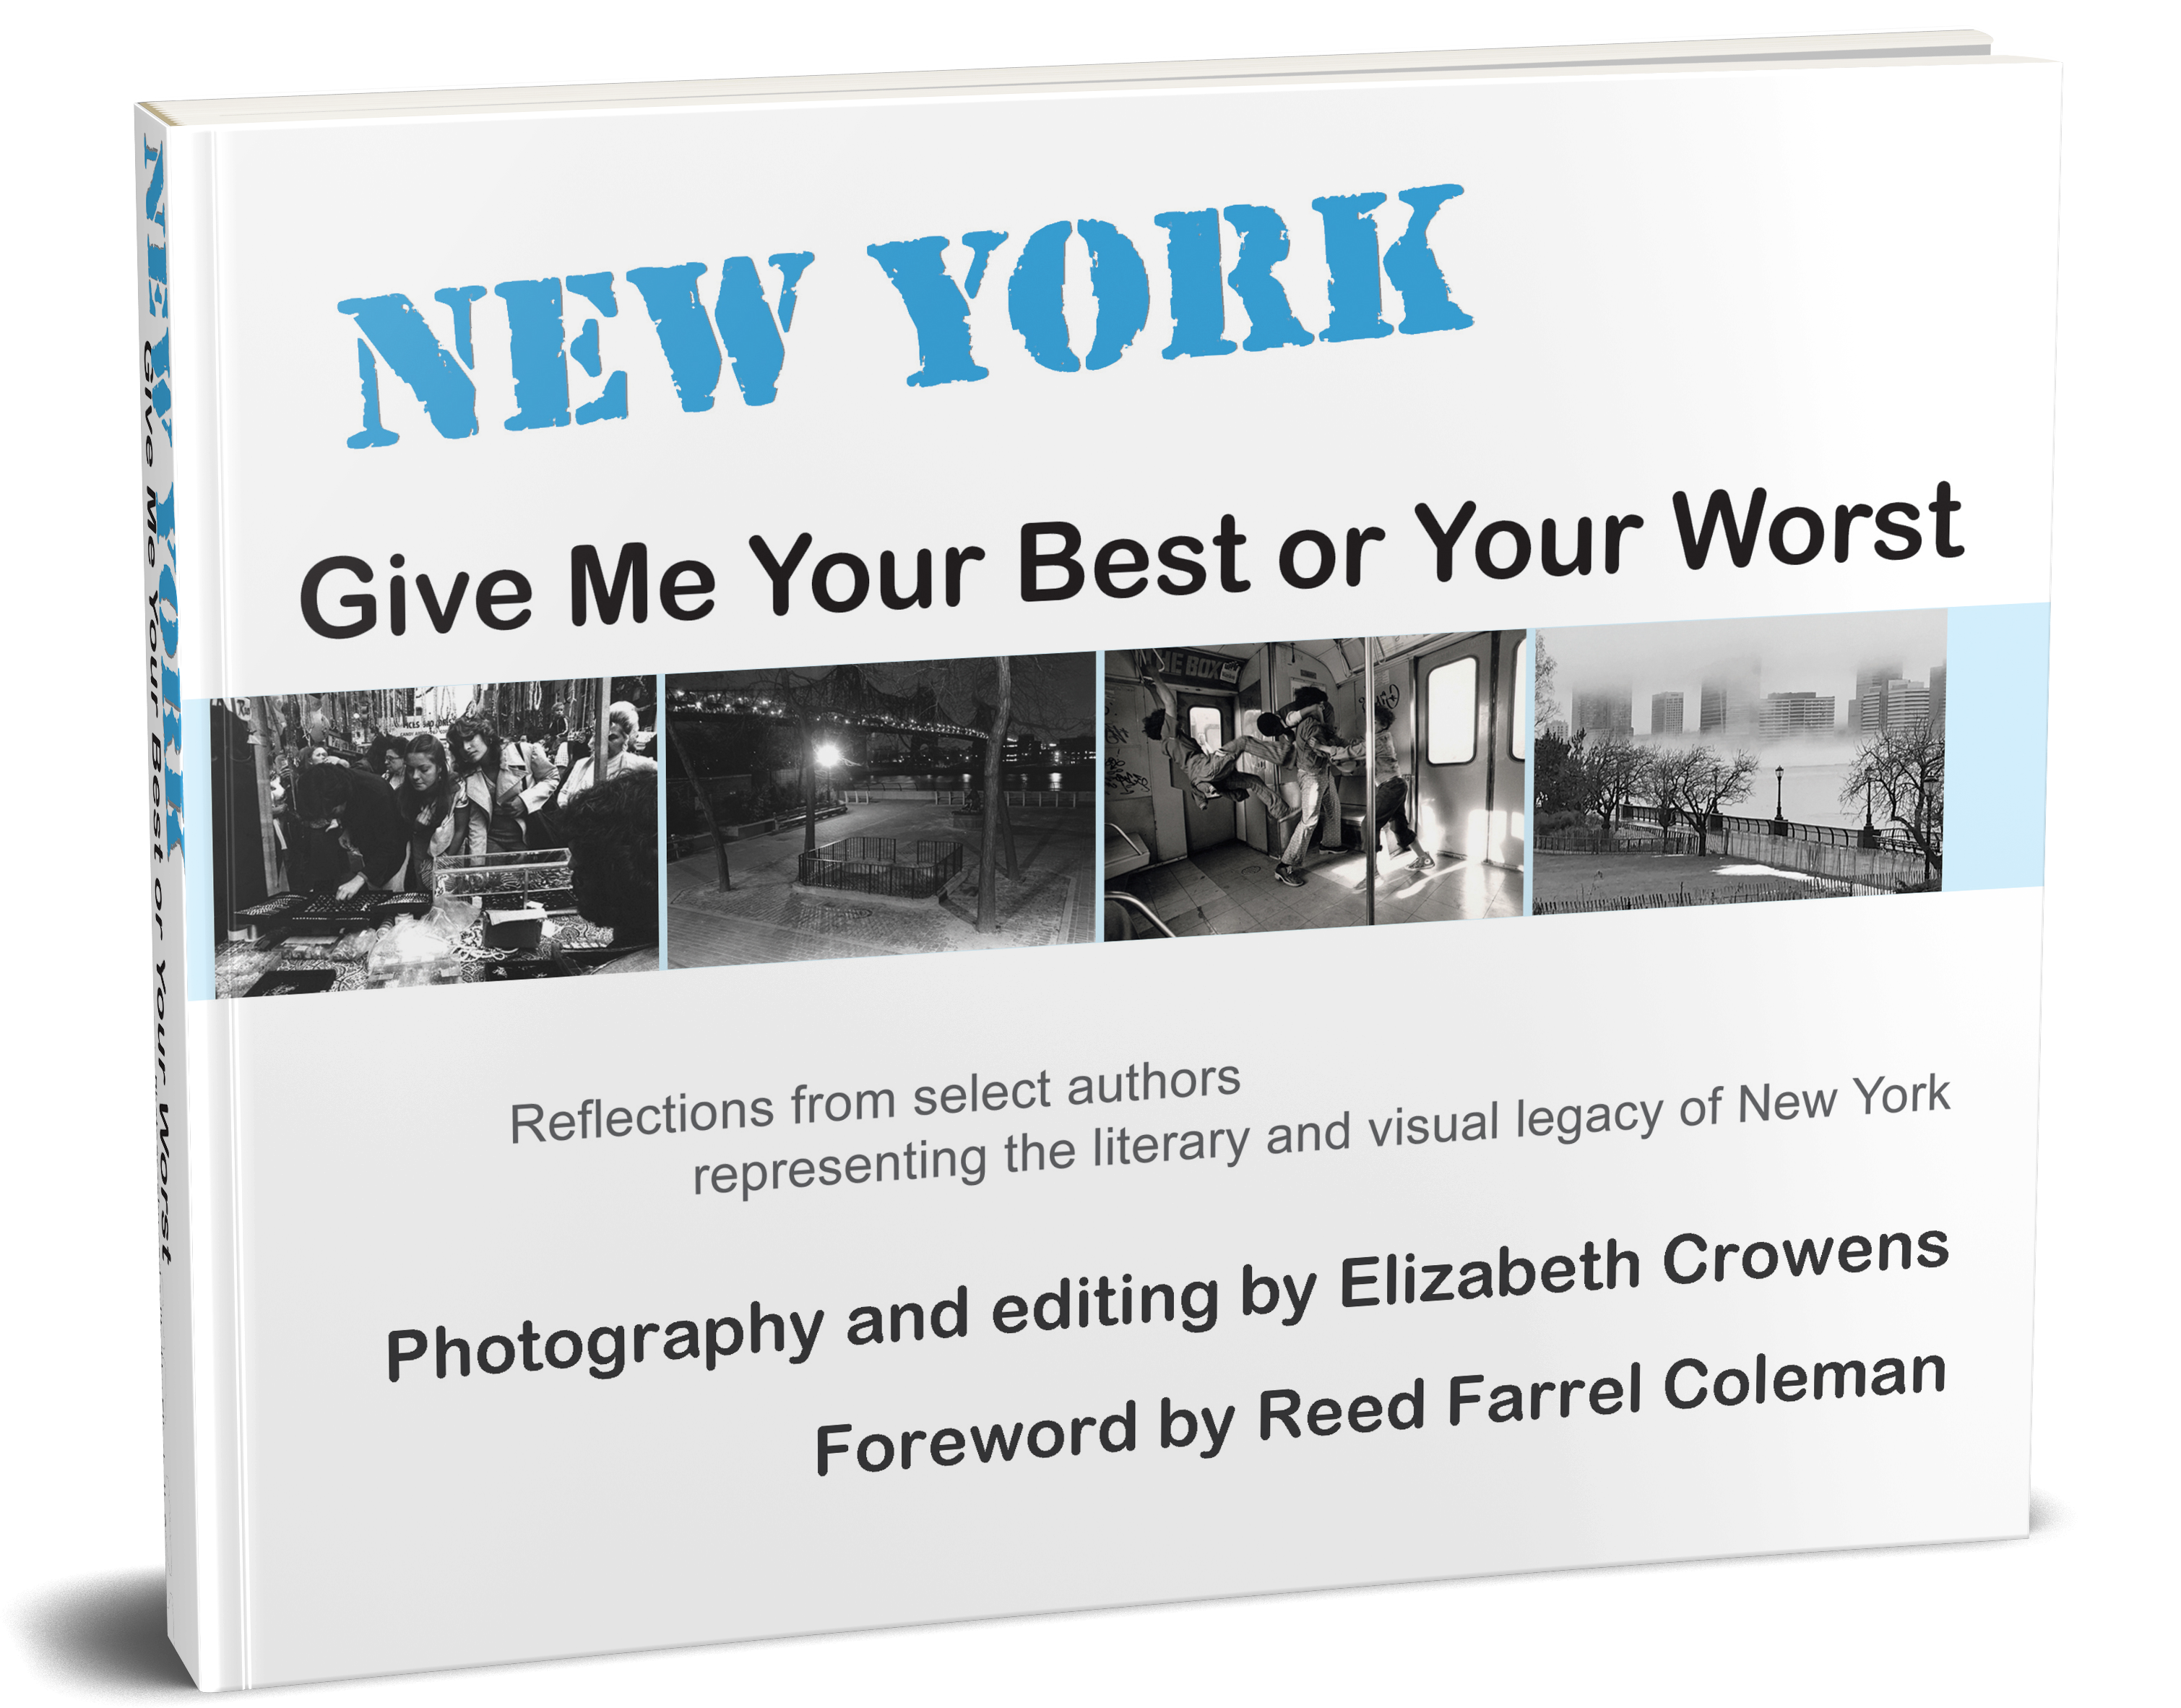 New York: Give Me Your Best or Your Worst